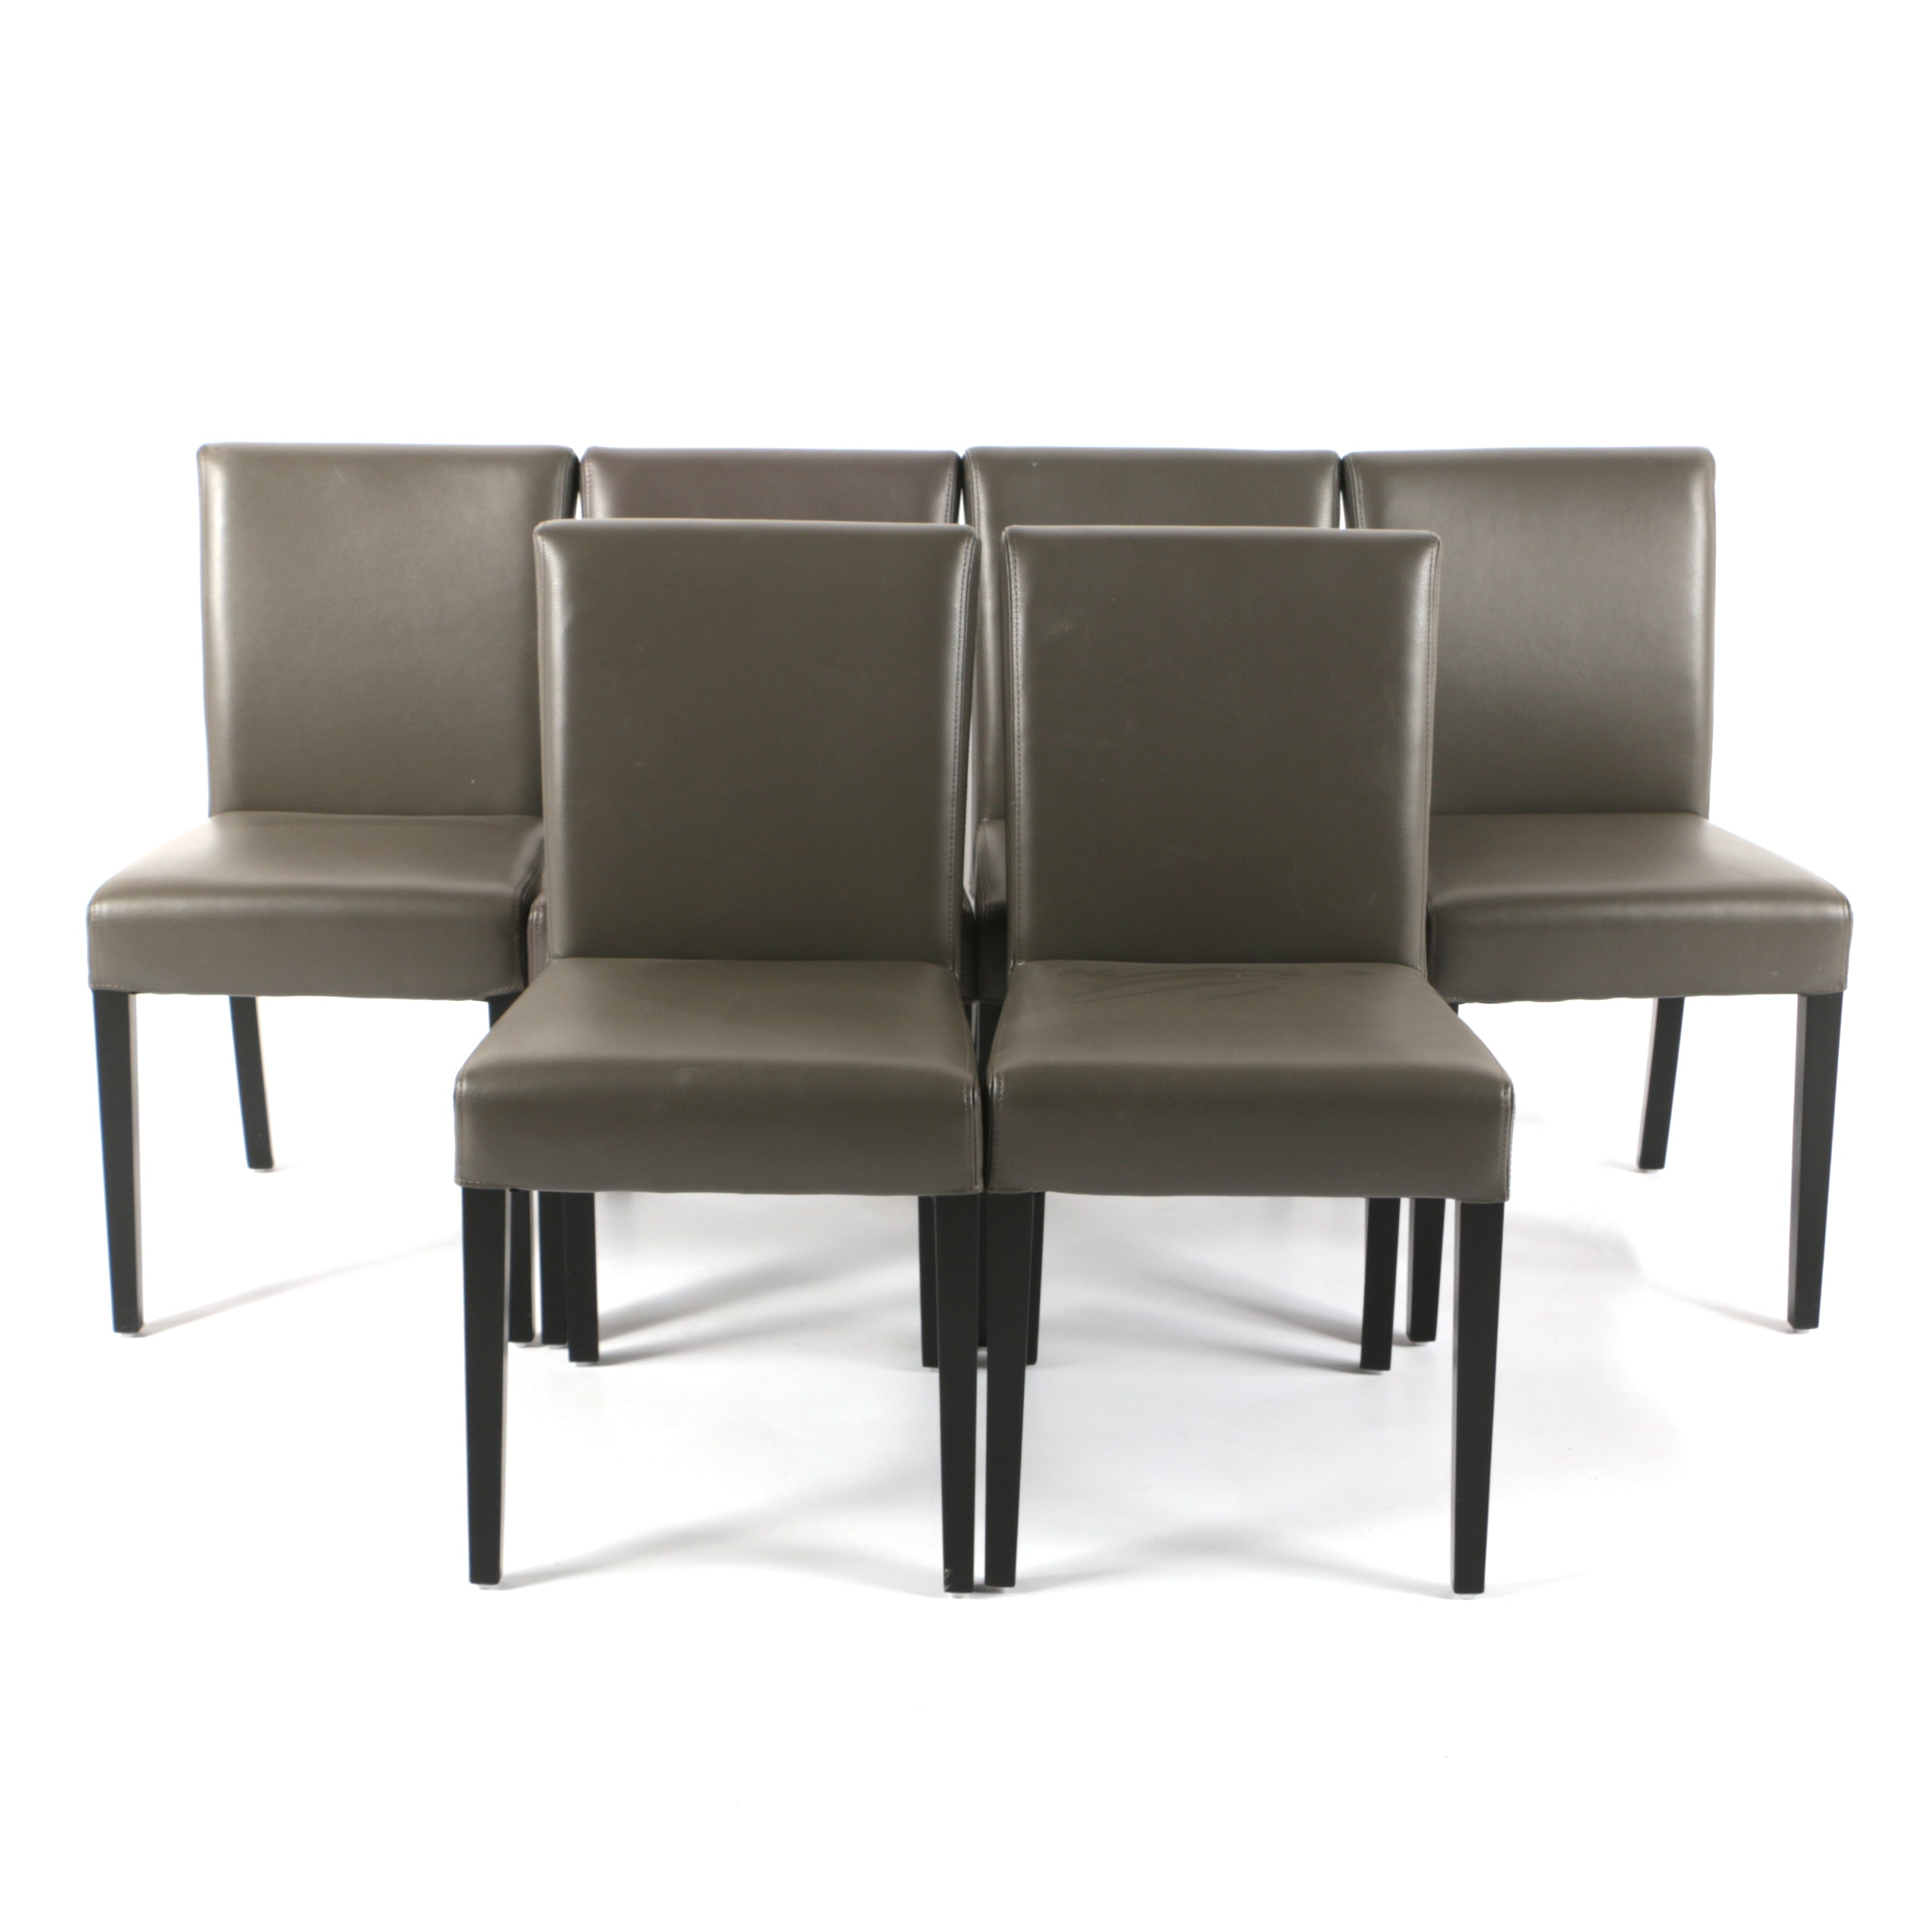 Contemporary Leather Dining Chairs from Crate and Barrel